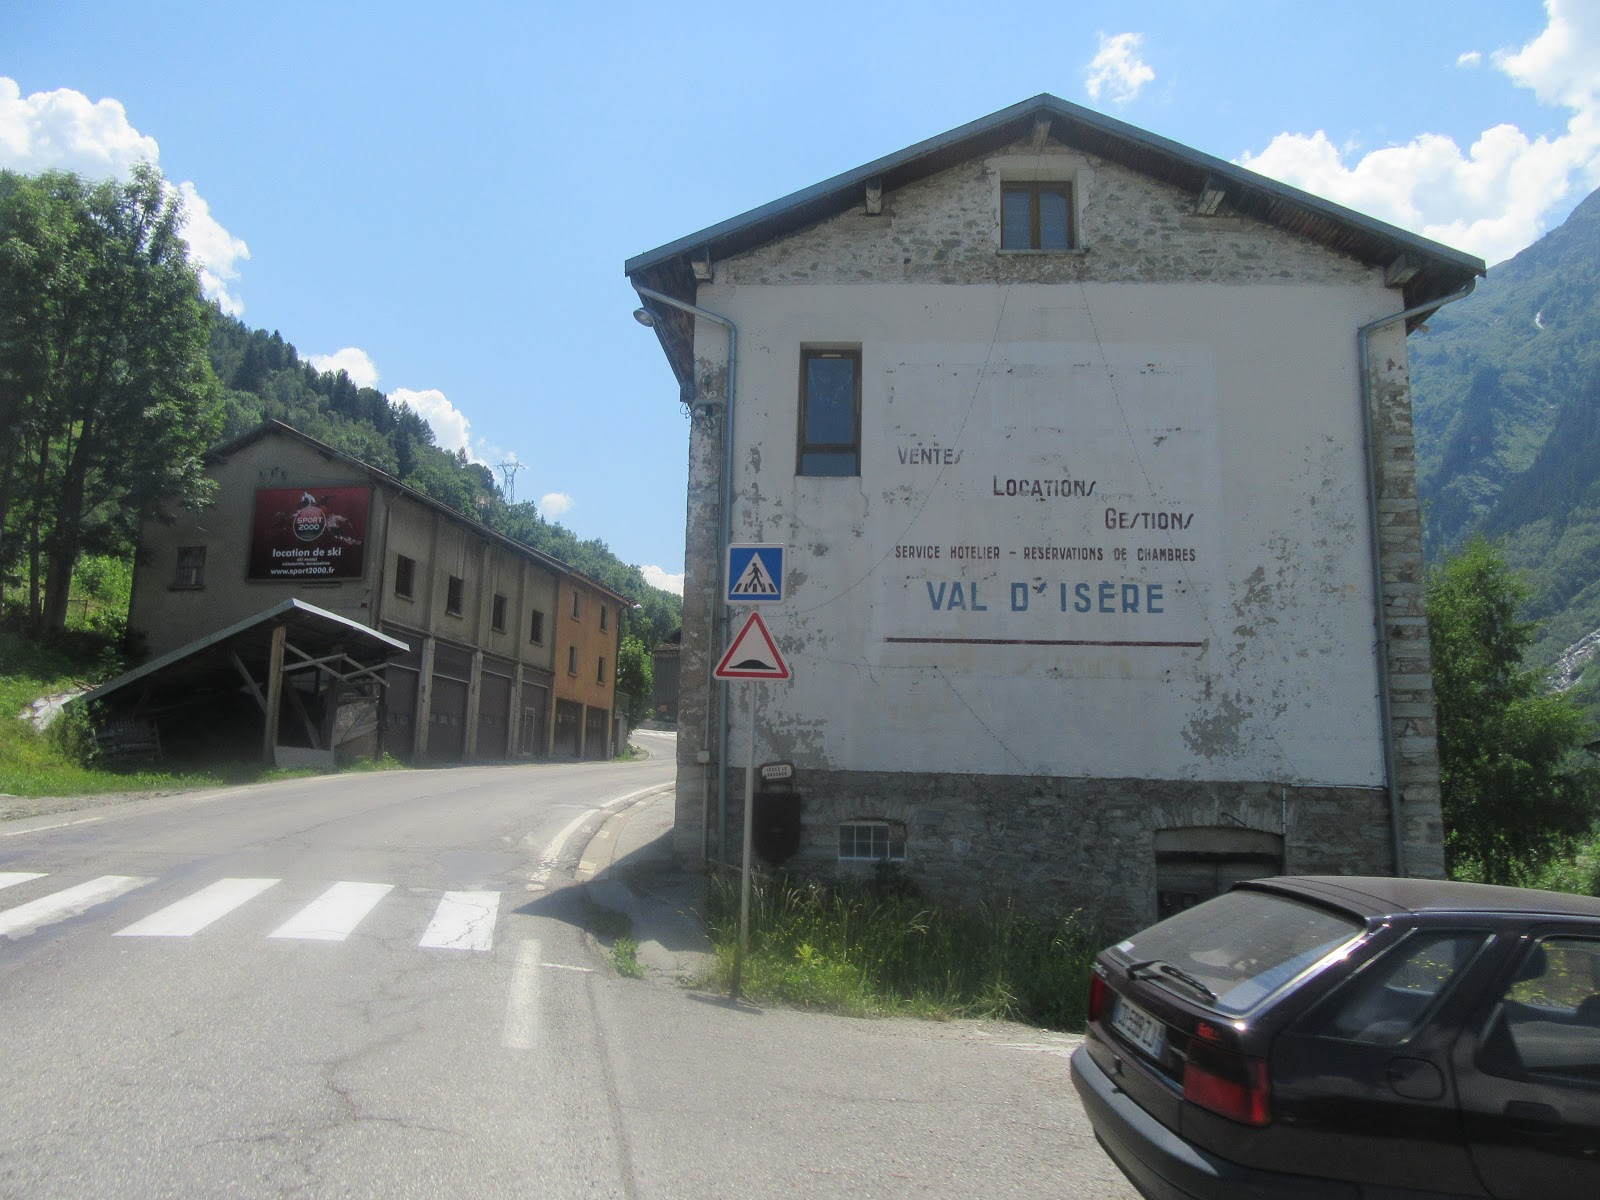 Bicycle ride of Col de L'Iseran from Val d'Isère - buildings in town and start of climb